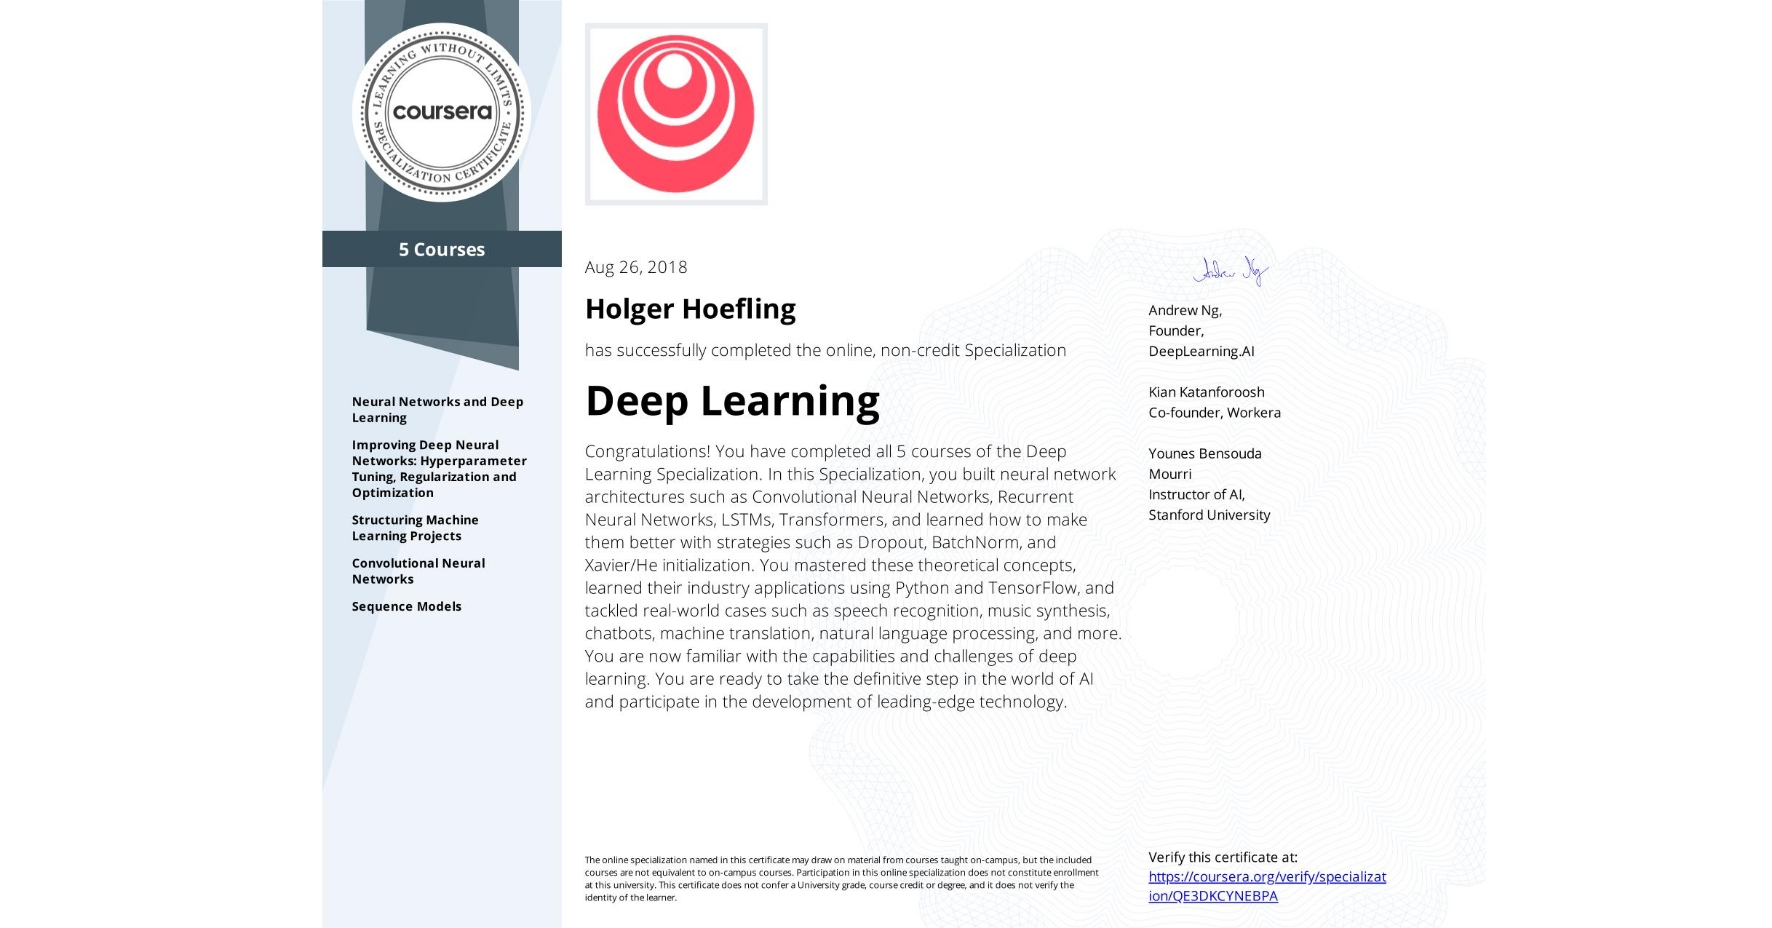 View certificate for Holger Hoefling, Deep Learning, offered through Coursera. Congratulations! You have completed all 5 courses of the Deep Learning Specialization.  In this Specialization, you built neural network architectures such as Convolutional Neural Networks, Recurrent Neural Networks, LSTMs, Transformers, and learned how to make them better with strategies such as Dropout, BatchNorm, and Xavier/He initialization. You mastered these theoretical concepts, learned their industry applications using Python and TensorFlow, and tackled real-world cases such as speech recognition, music synthesis, chatbots, machine translation, natural language processing, and more.  You are now familiar with the capabilities and challenges of deep learning. You are ready to take the definitive step in the world of AI and participate in the development of leading-edge technology.